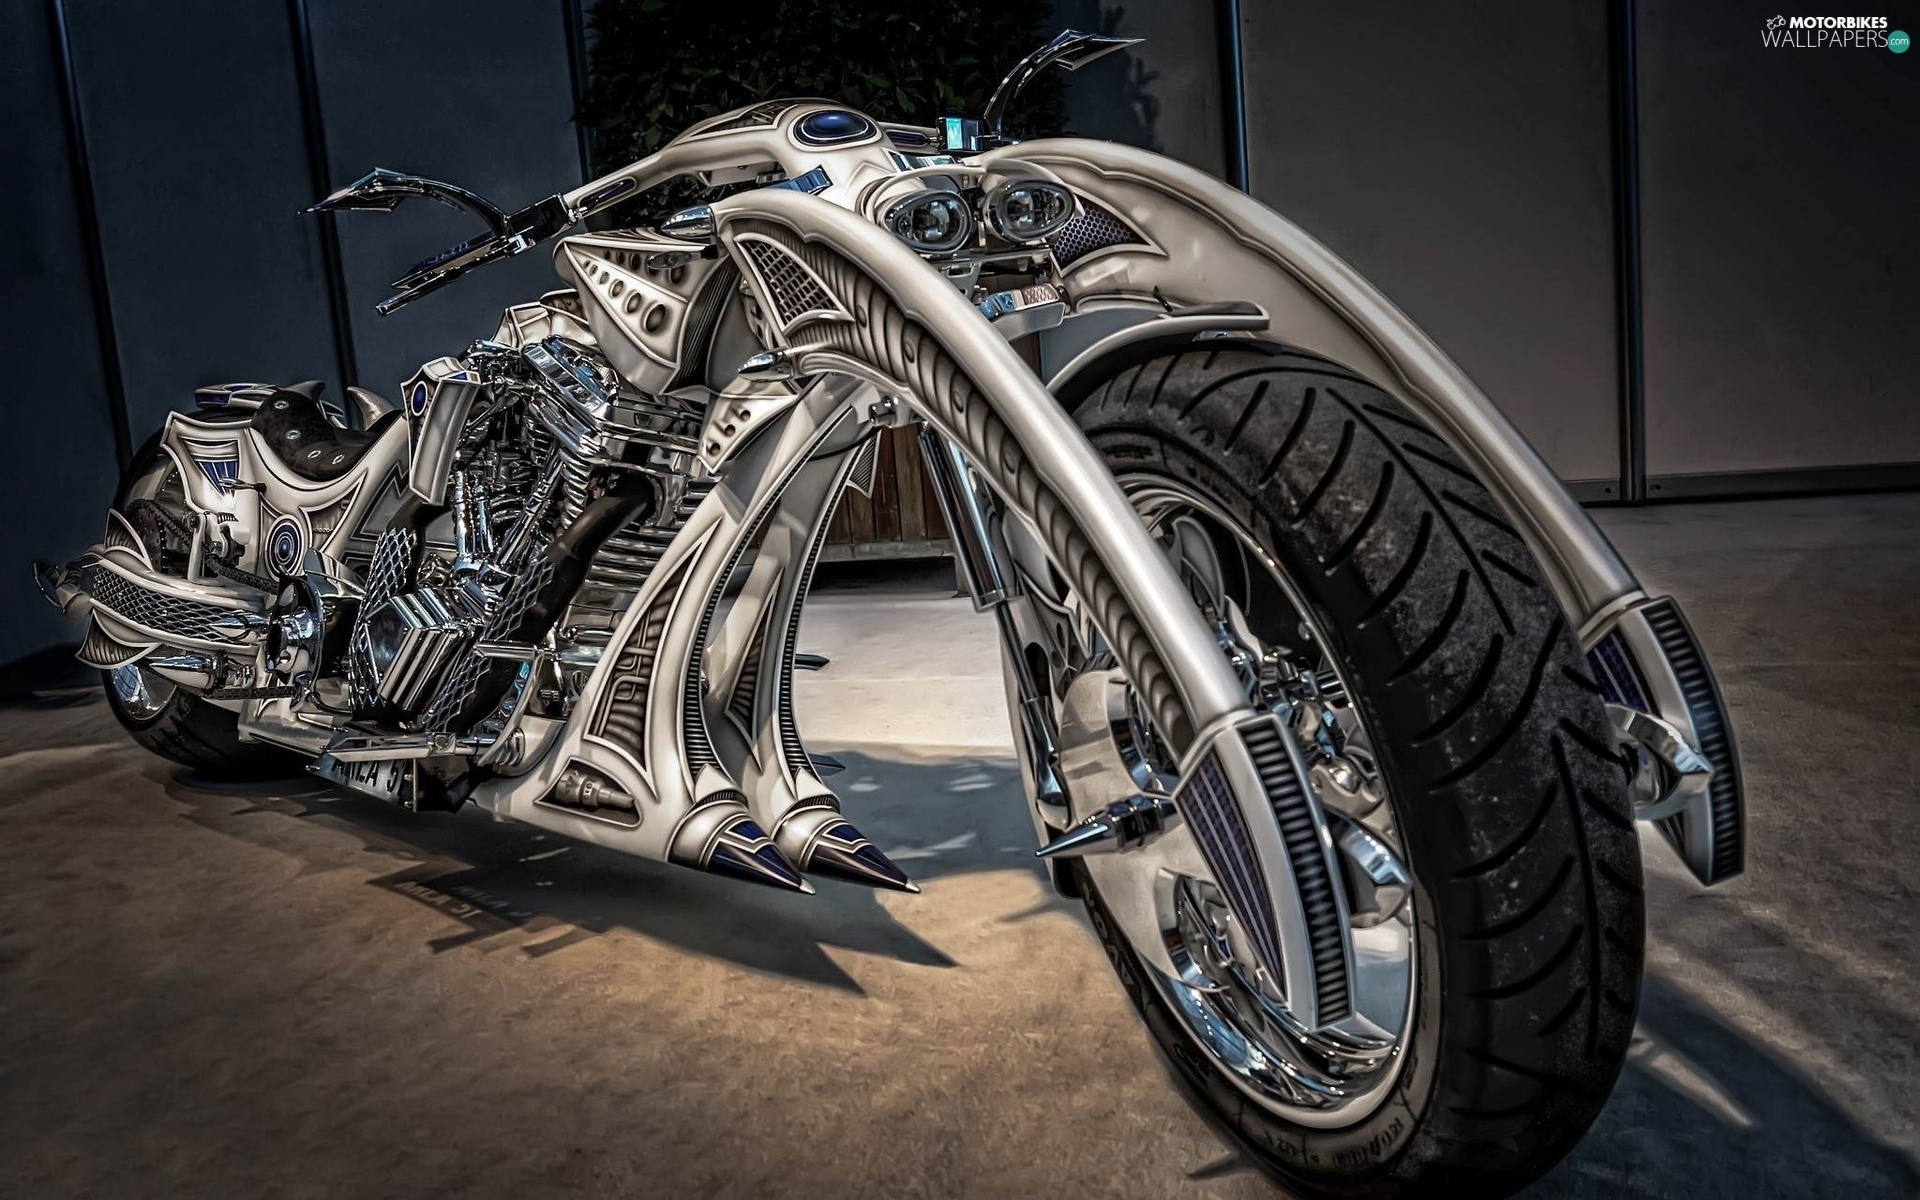 Custom Chopper Motorbikes Wallpapers 1920x1200